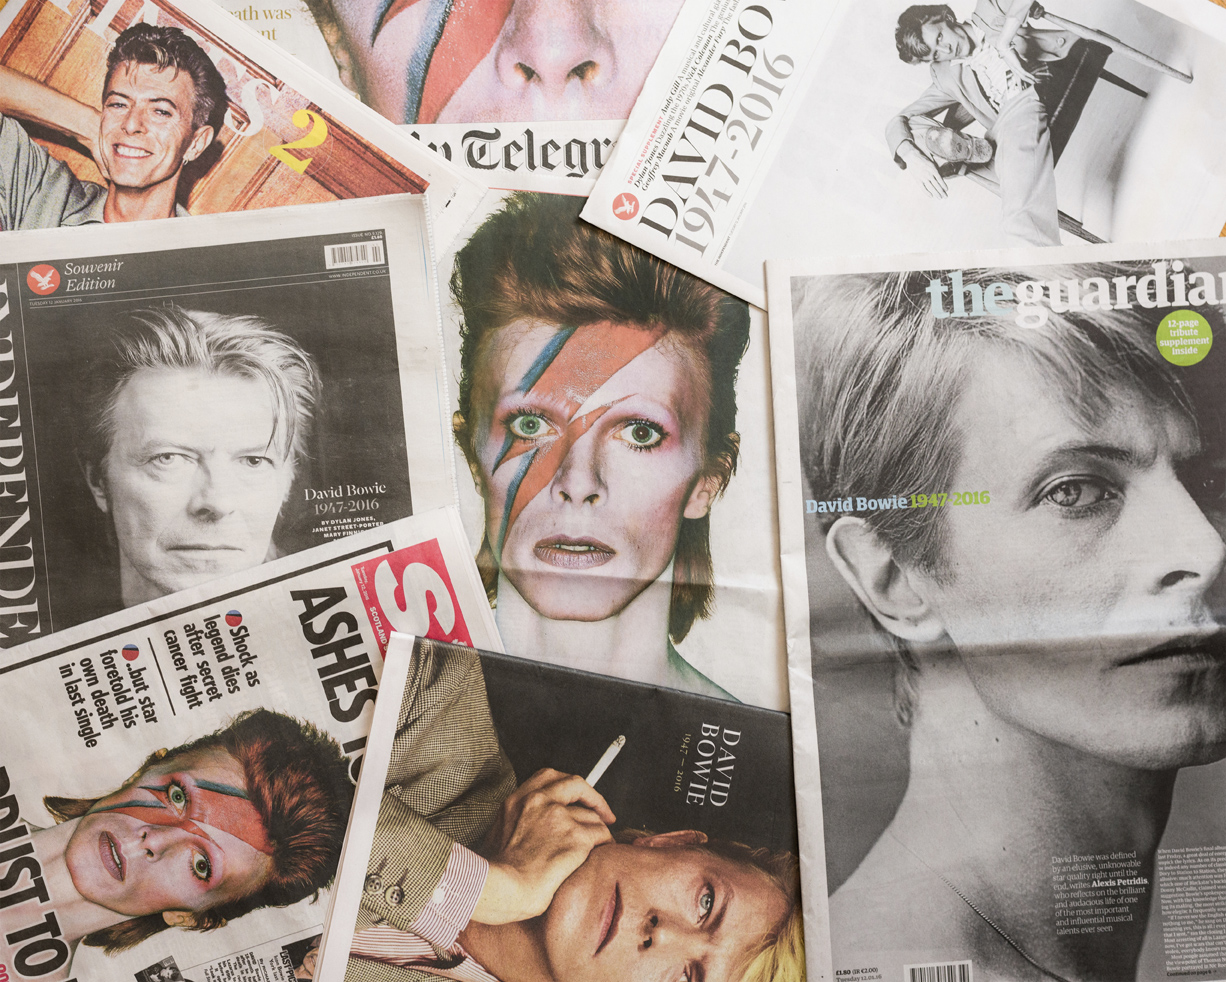 Edinburgh, UK - January 12, 2016: The front pages of several British newspapers, published following the death of David Bowie on 10th January 2016.  UK newspaper front pages featuring images of David Bowie with news of his death on 10th January 2016.  All artist royalties from sales of this file and others in the lightbox linked to below are donated to Oxfam, an international charity committed to finding lasting solutions to poverty and related injustice around the world.  Please click [url=http://istockpho.to/OxfamDonationLightbox]here[/url] to see the files in the Oxfam Donation lightbox.  Lightbox royalties donated to 1st August 2015: GBP 1,823.56 (USD 2,850.88) Next date for donations: 1st August 2016